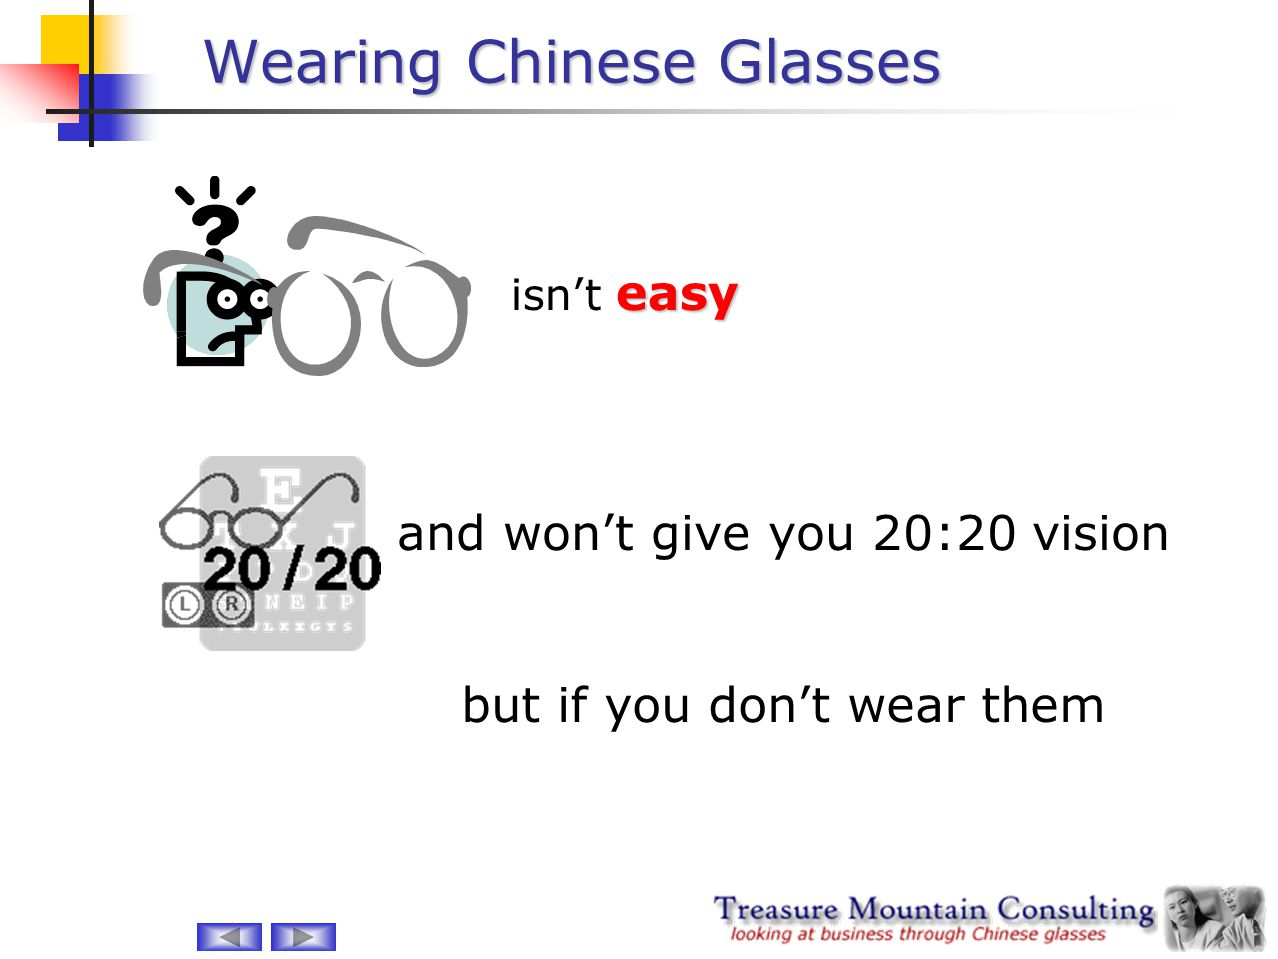 Wearing Chinese Glasses